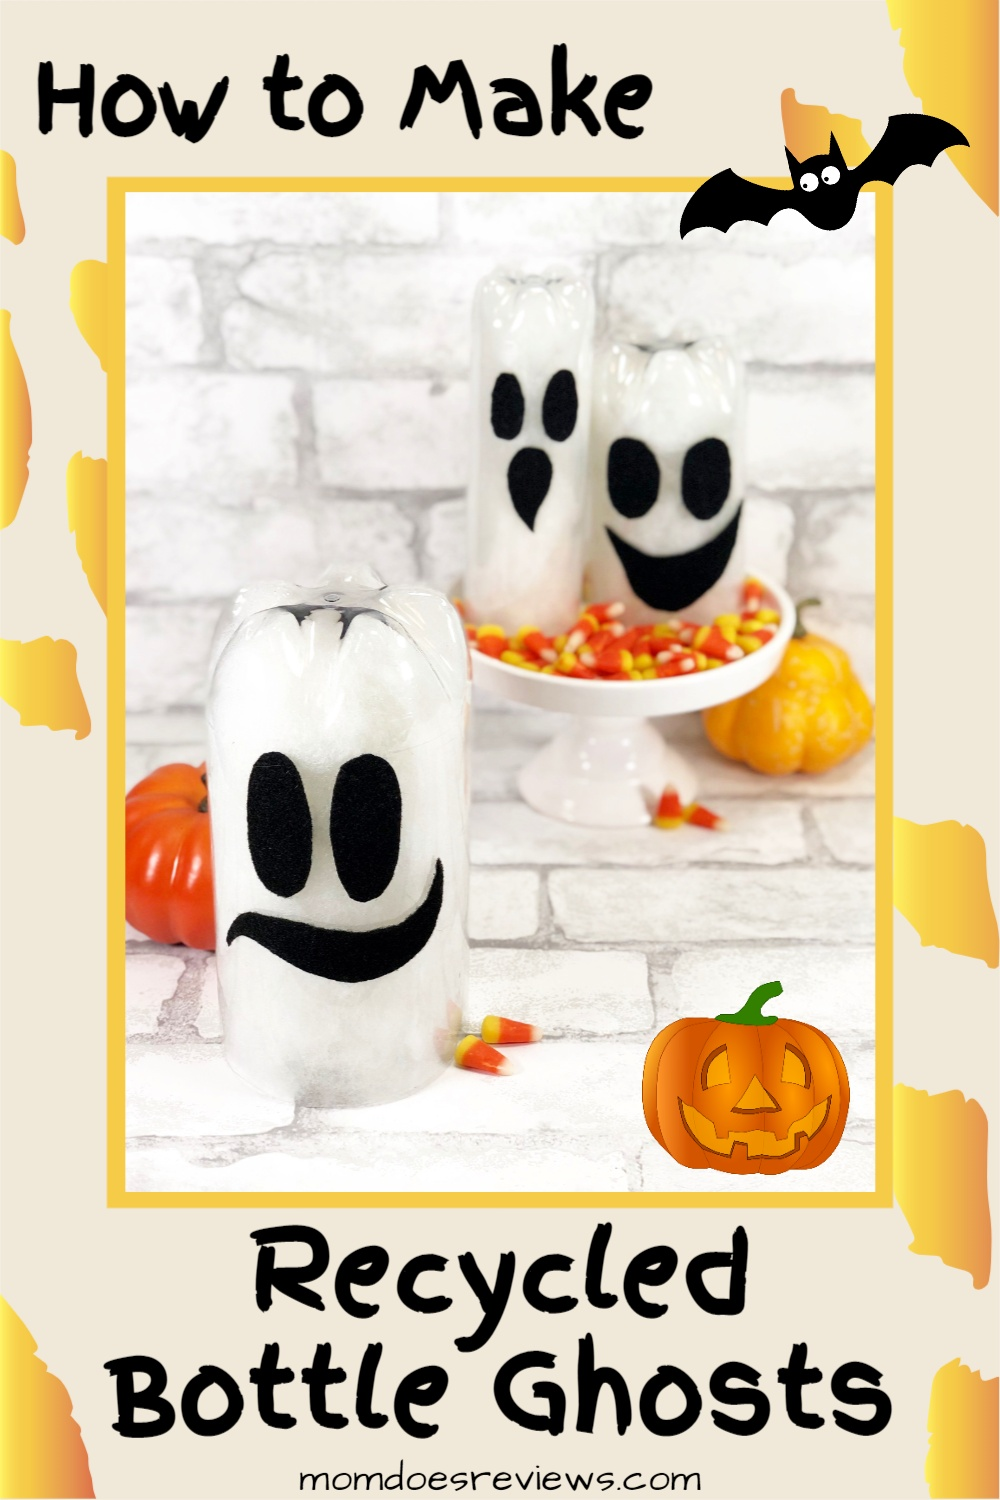 How to Make Recycled Bottle Ghosts for Halloween!